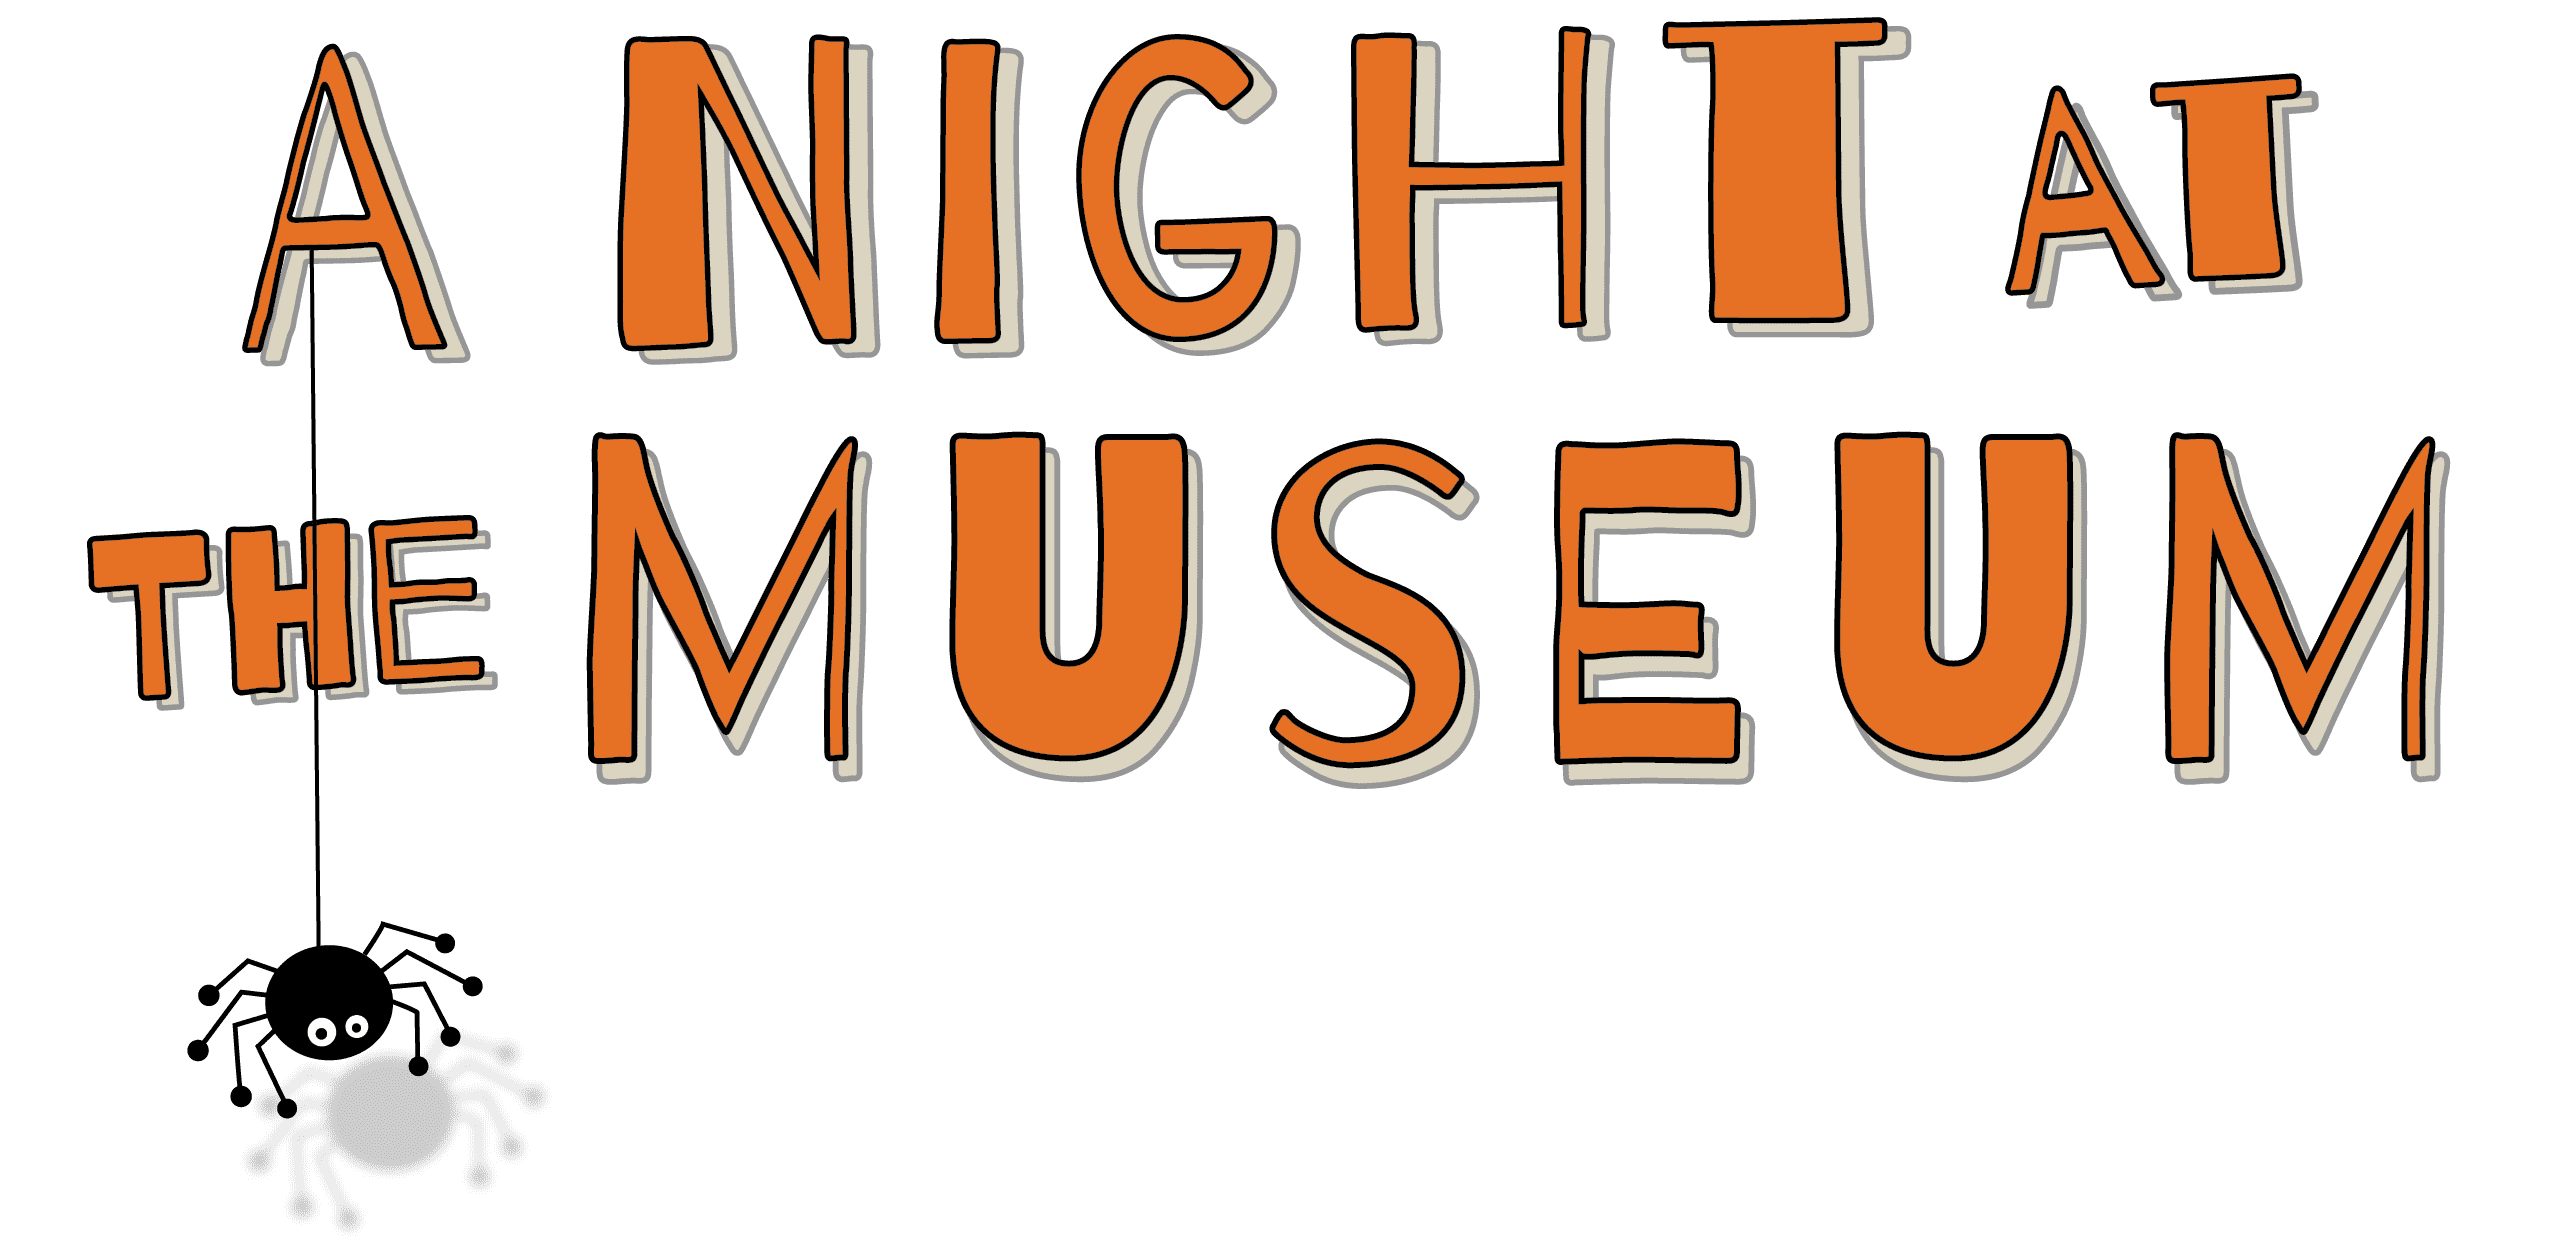 Tampa Bay History Center, Night at the Museum logo with spider